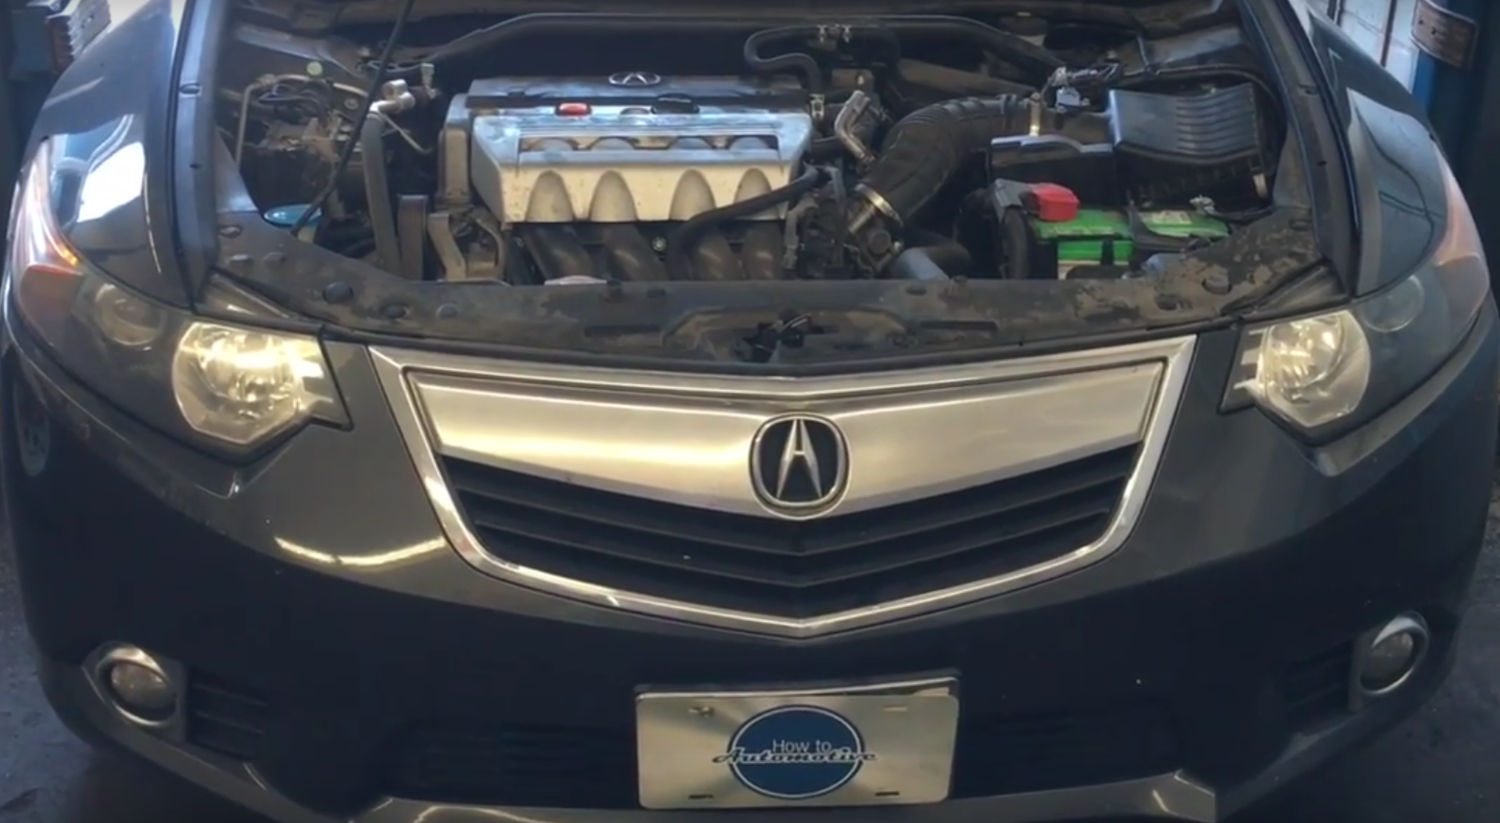 How To Replace The Spark Plugs On A Acura TSX With L - 2018 acura tsx grill replacement